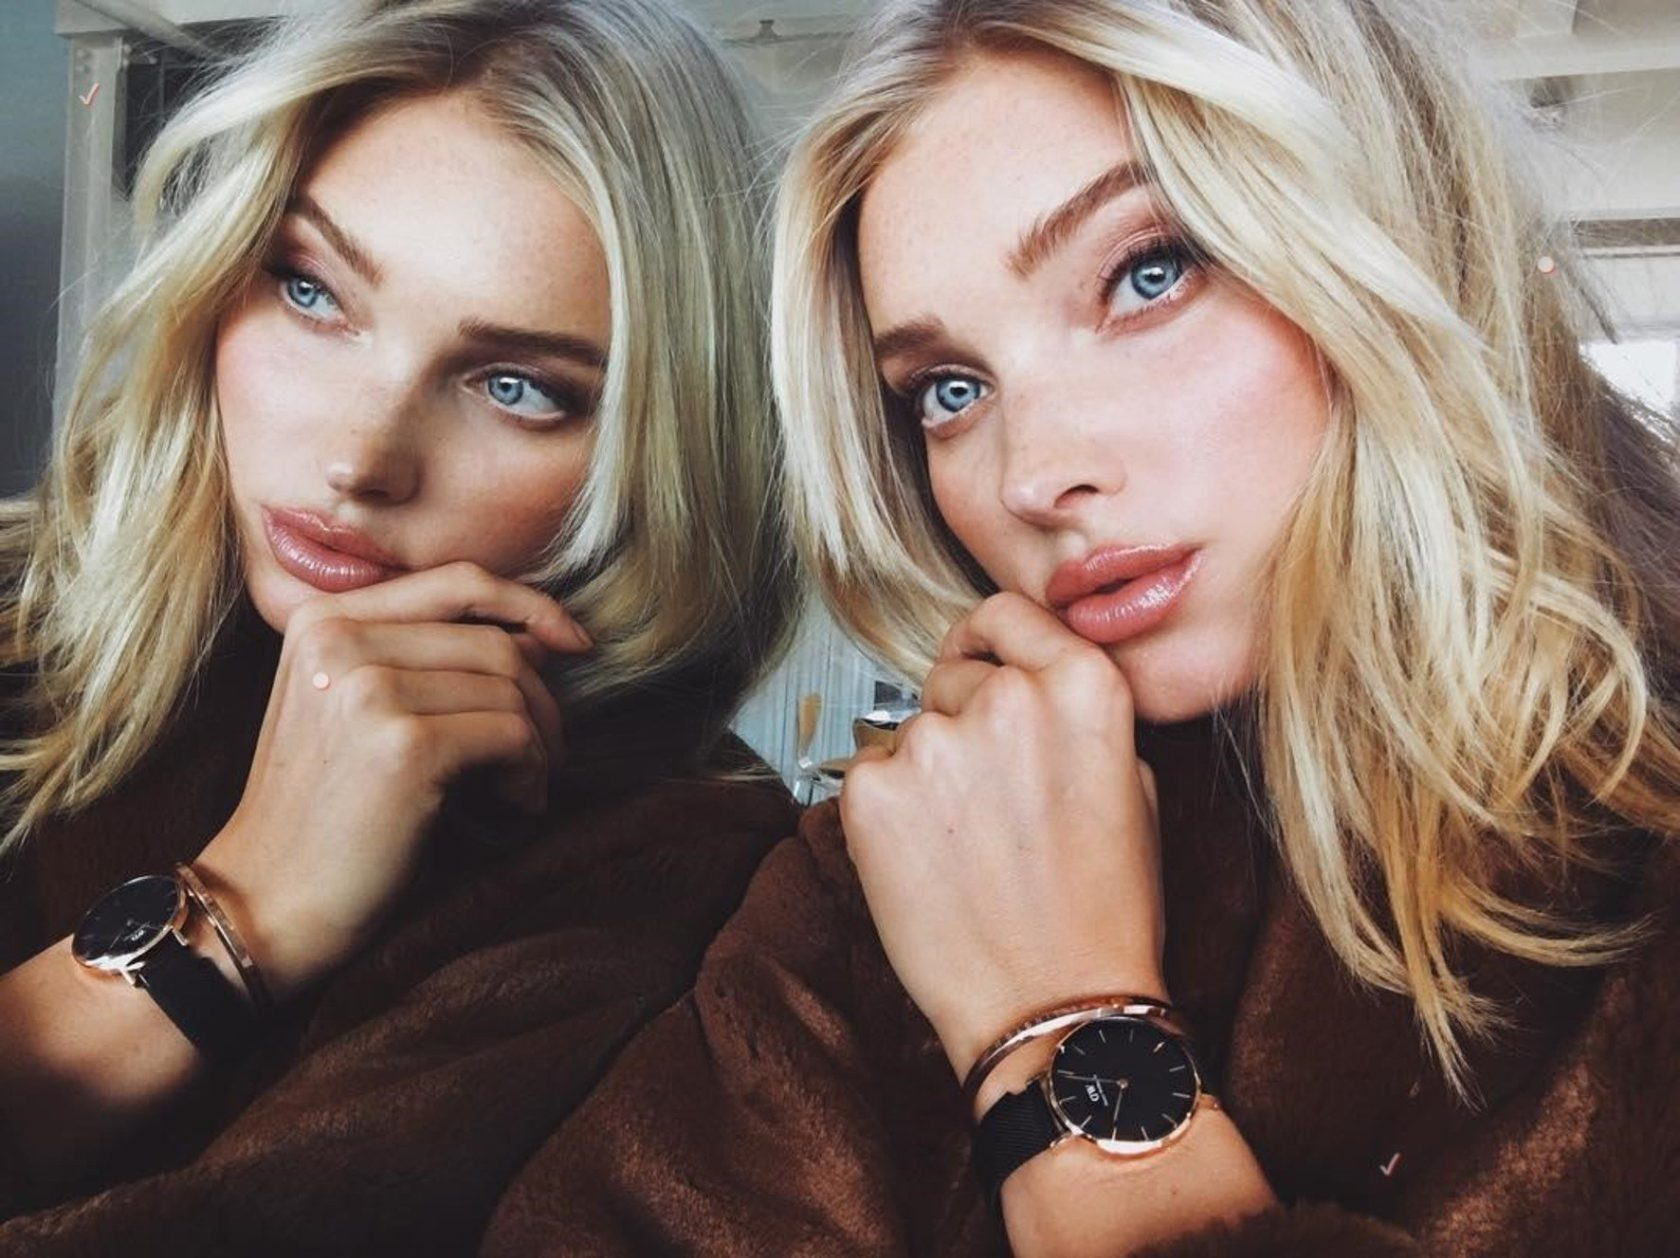 """Elsa Hosk (hoskelsa / 01.02.2018): """"Time to reflect with my @DanielWellington #DWClassicPetite watch. Get 15% off all purchases with my code ELSAHOSK at danielwellington.com. #Ad"""""""", Image: 362269269, License: Rights-managed, Restrictions: , Model Release: no, Credit line: Profimedia, Face To Face A"""